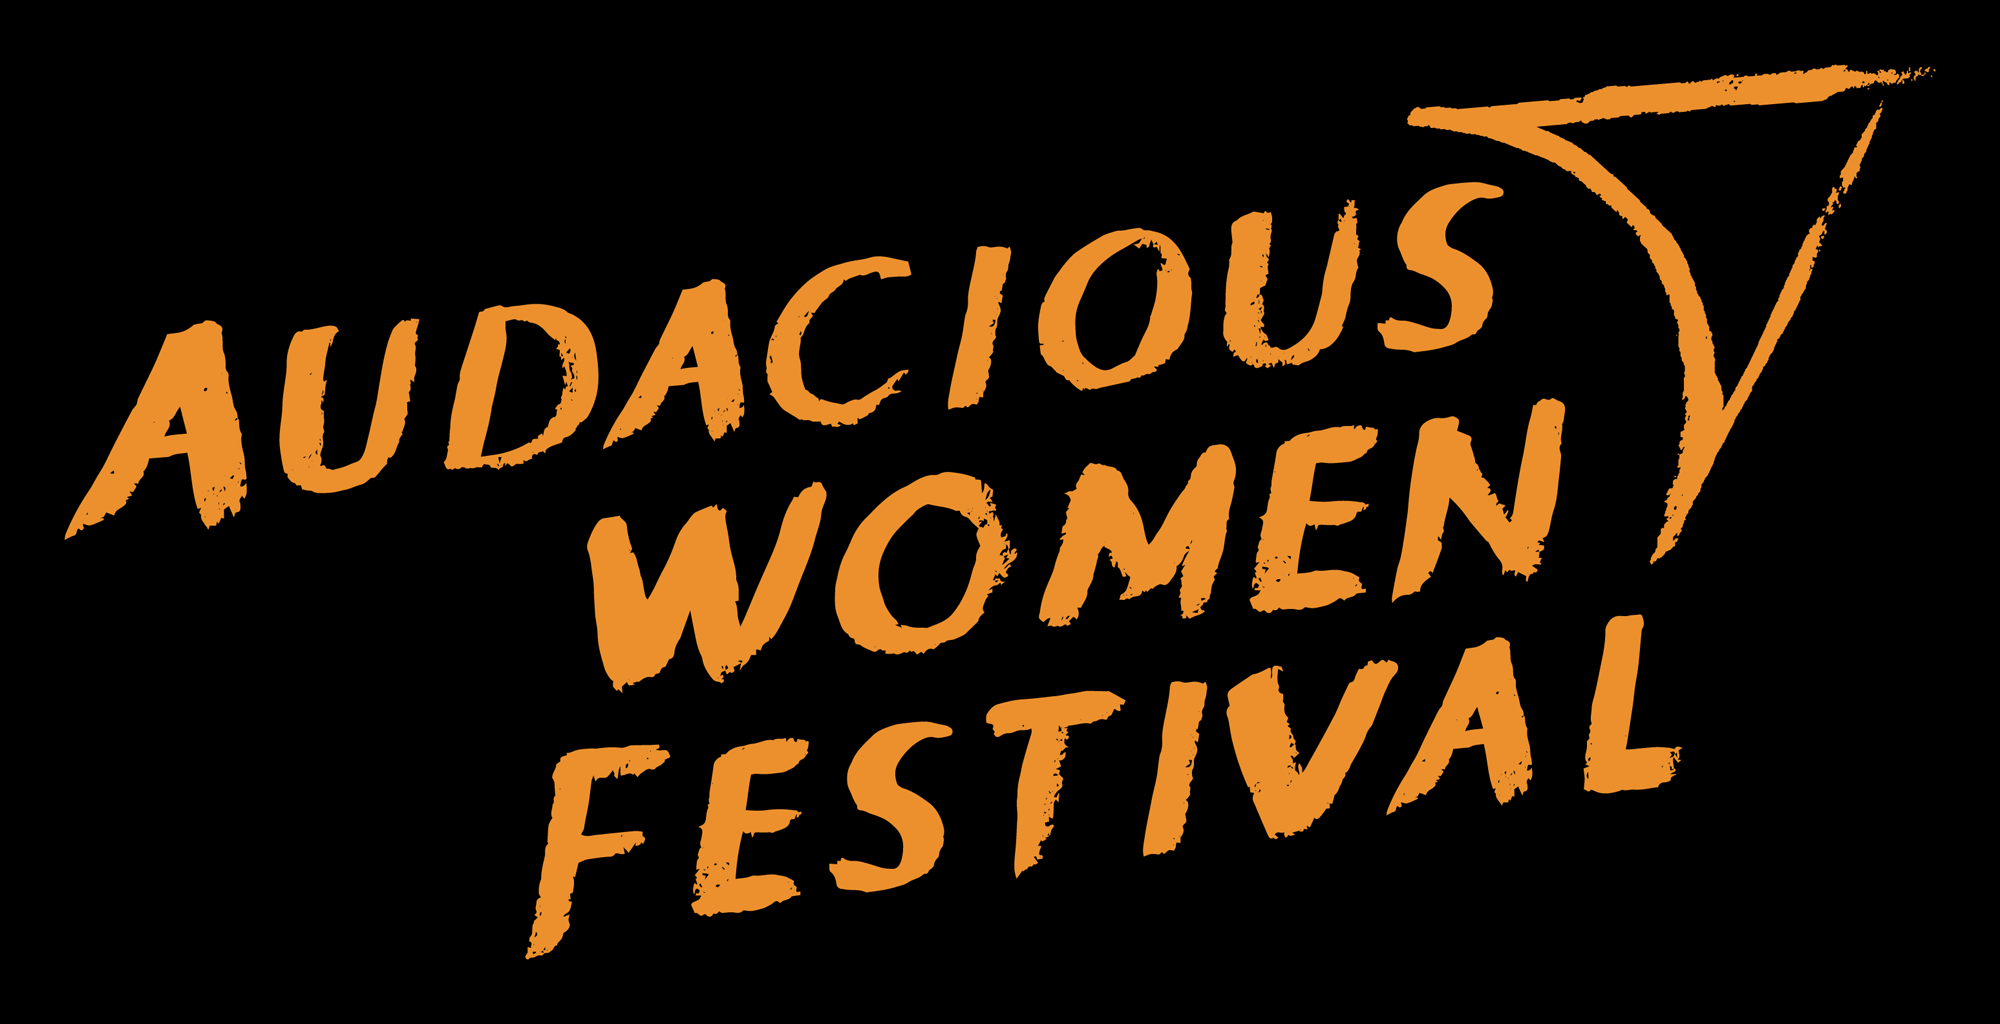 The Audacious Women Festival